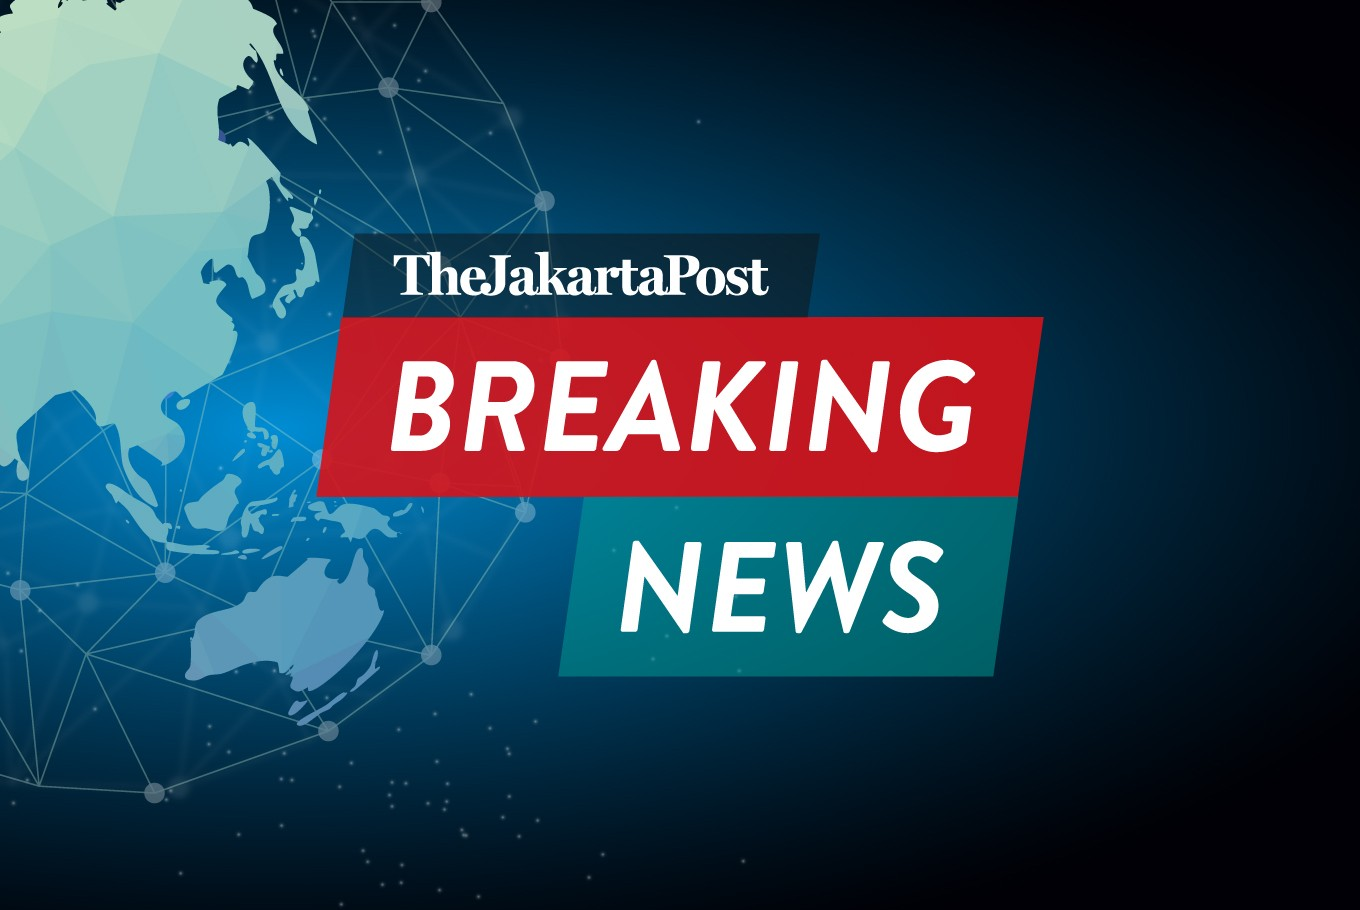 BREAKING: Jokowi announces Indonesia's first two confirmed COVID-19 cases